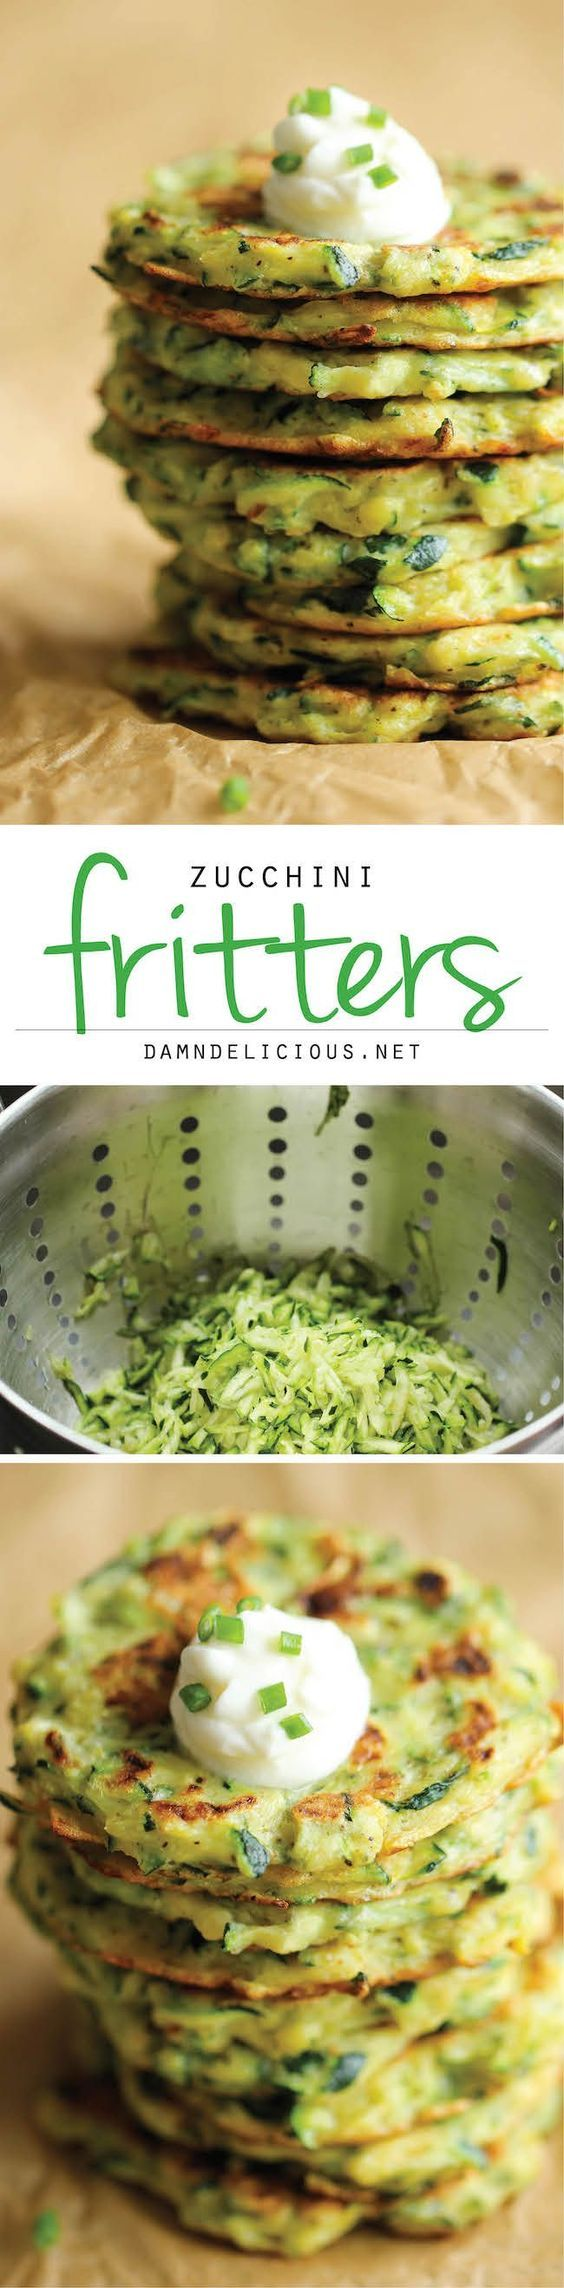 """Carb free Recipes Quest for Dinner: Zucchini Fritters  """"- These fritters are unbelievably easy to make, low calorie, and the perfect way to sneak in some veggies!""""  """"1 1/2 pounds zucchini, grated 1 teaspoon salt 1/4 cup  (grain-free) flour 1/4 cup grated Parmesan 2 cloves garlic, minced 1 large egg, beaten Kosher salt and freshly ground black pepper, to taste 2 tablespoons olive oil"""""""